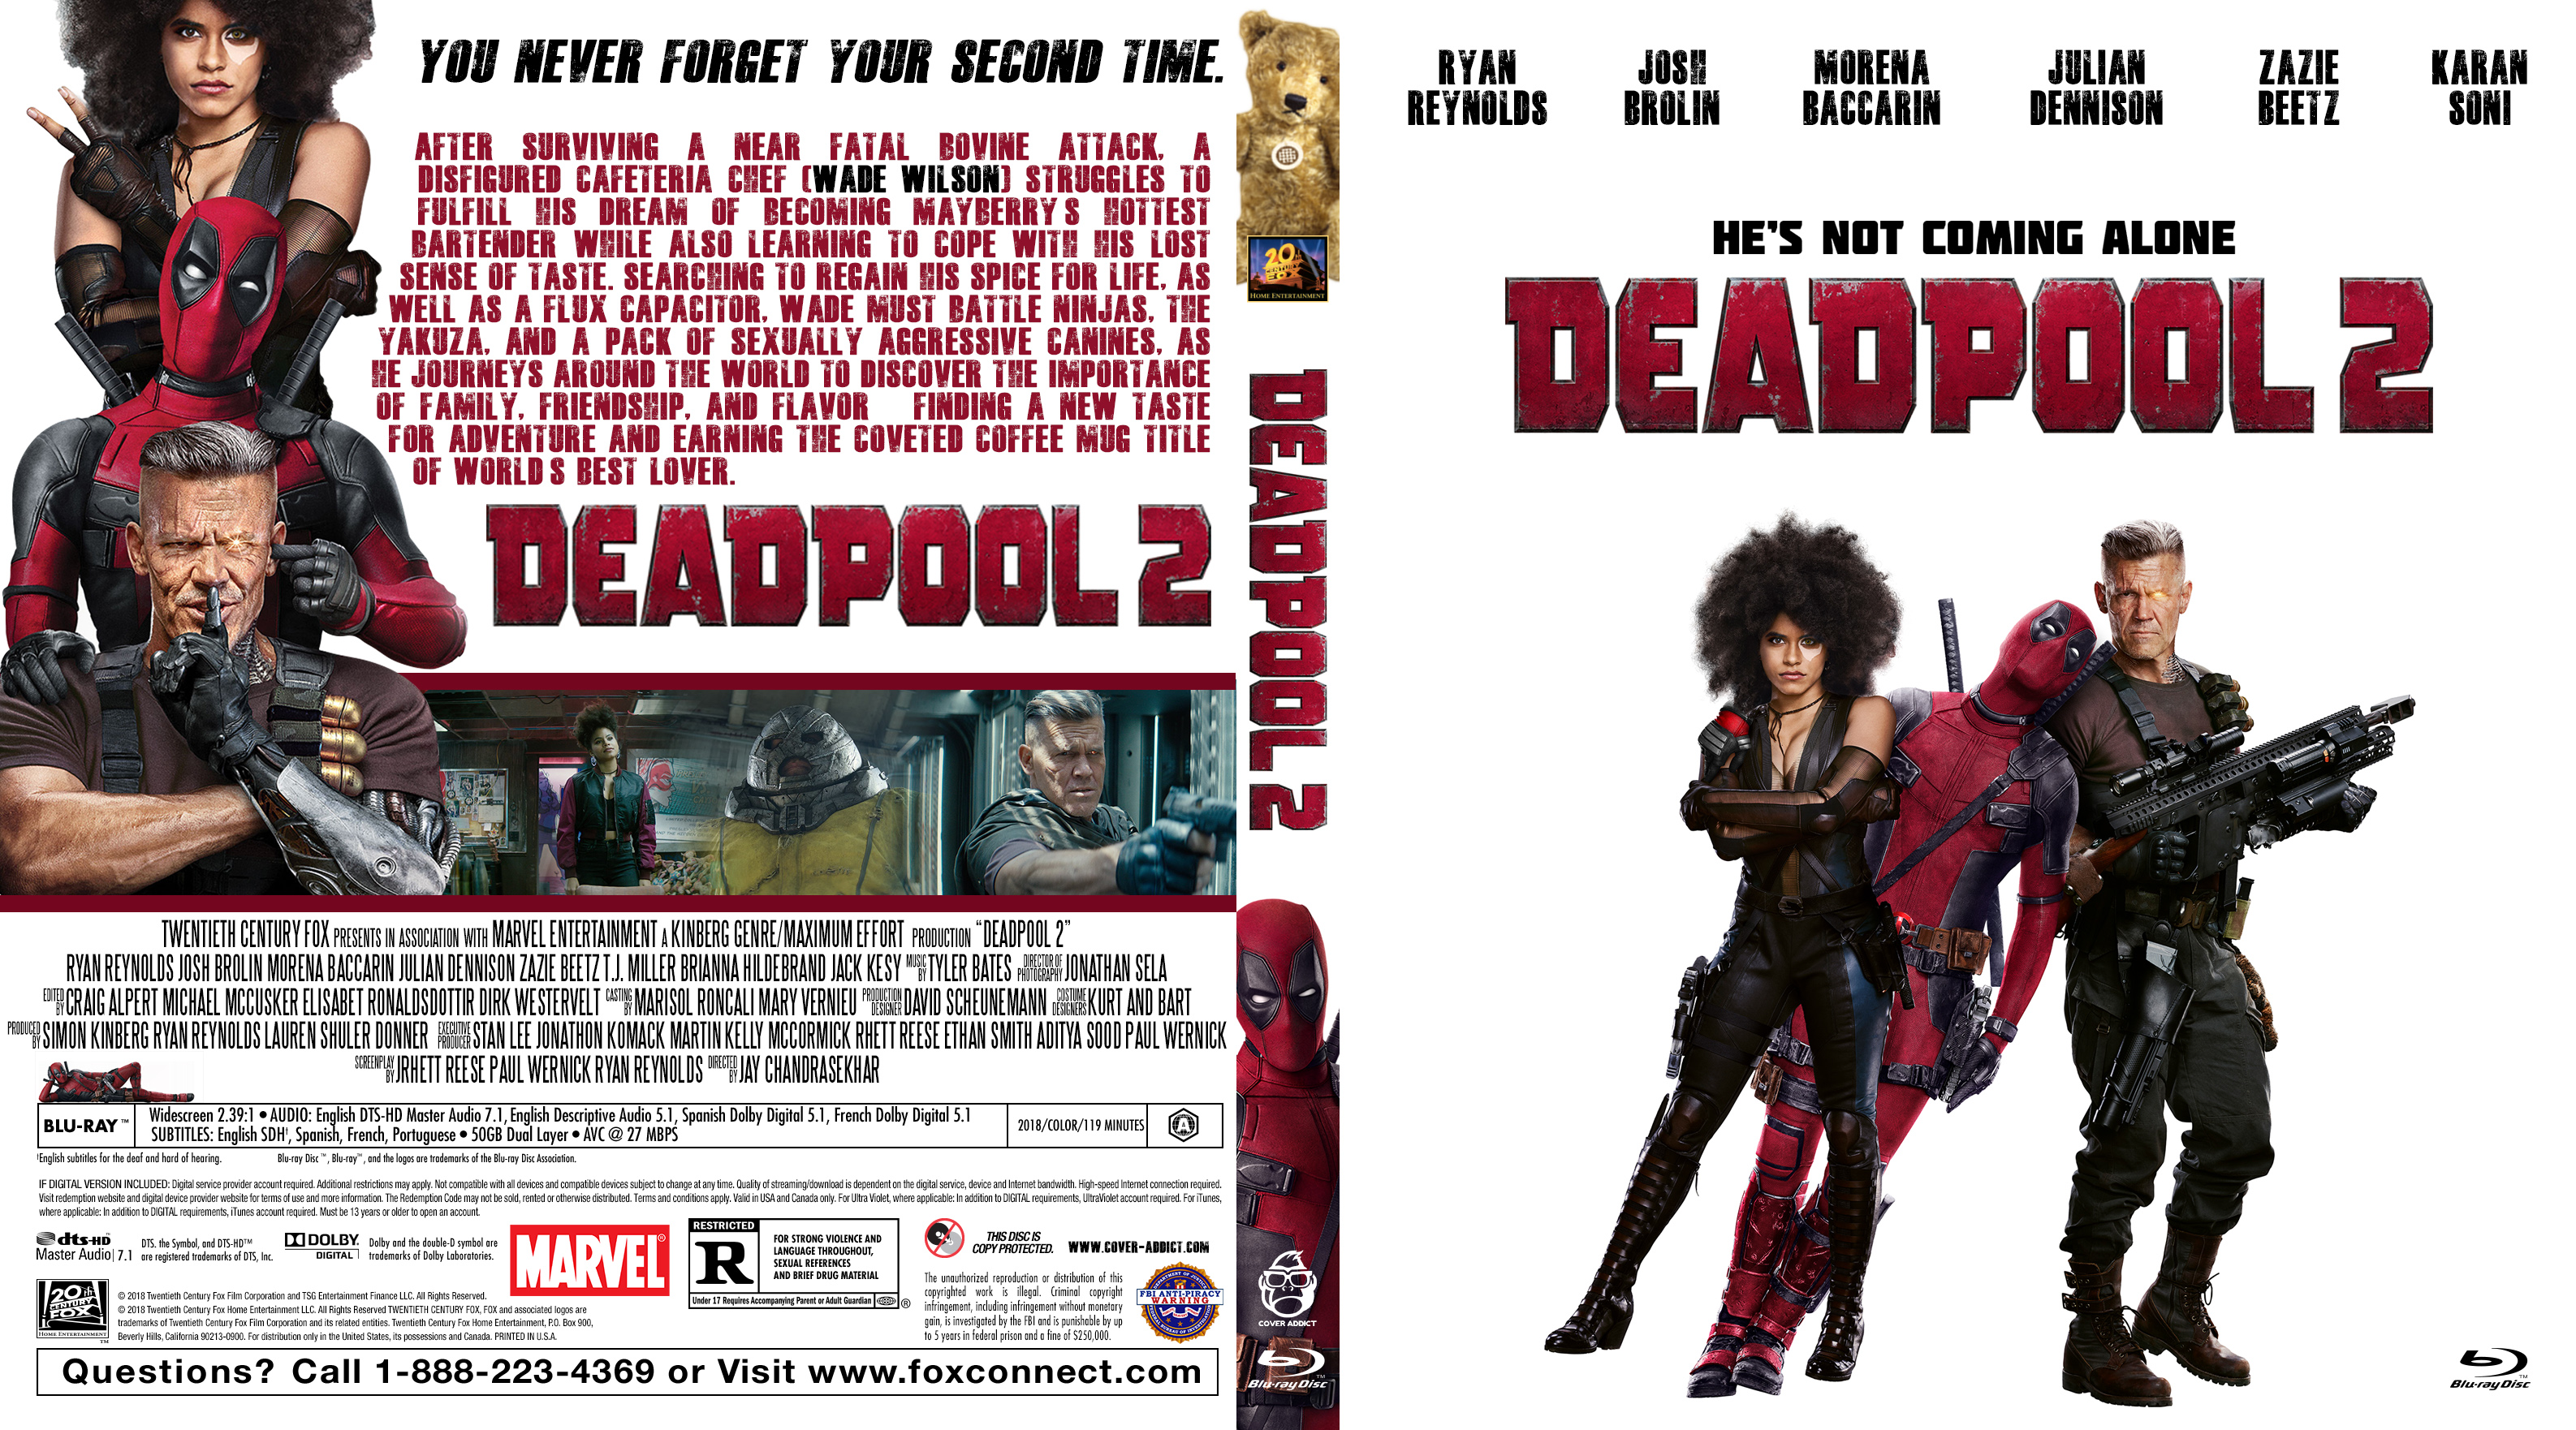 300 Full Movie >> Deadpool 2 Bluray Cover - Cover Addict - DVD and Bluray Covers